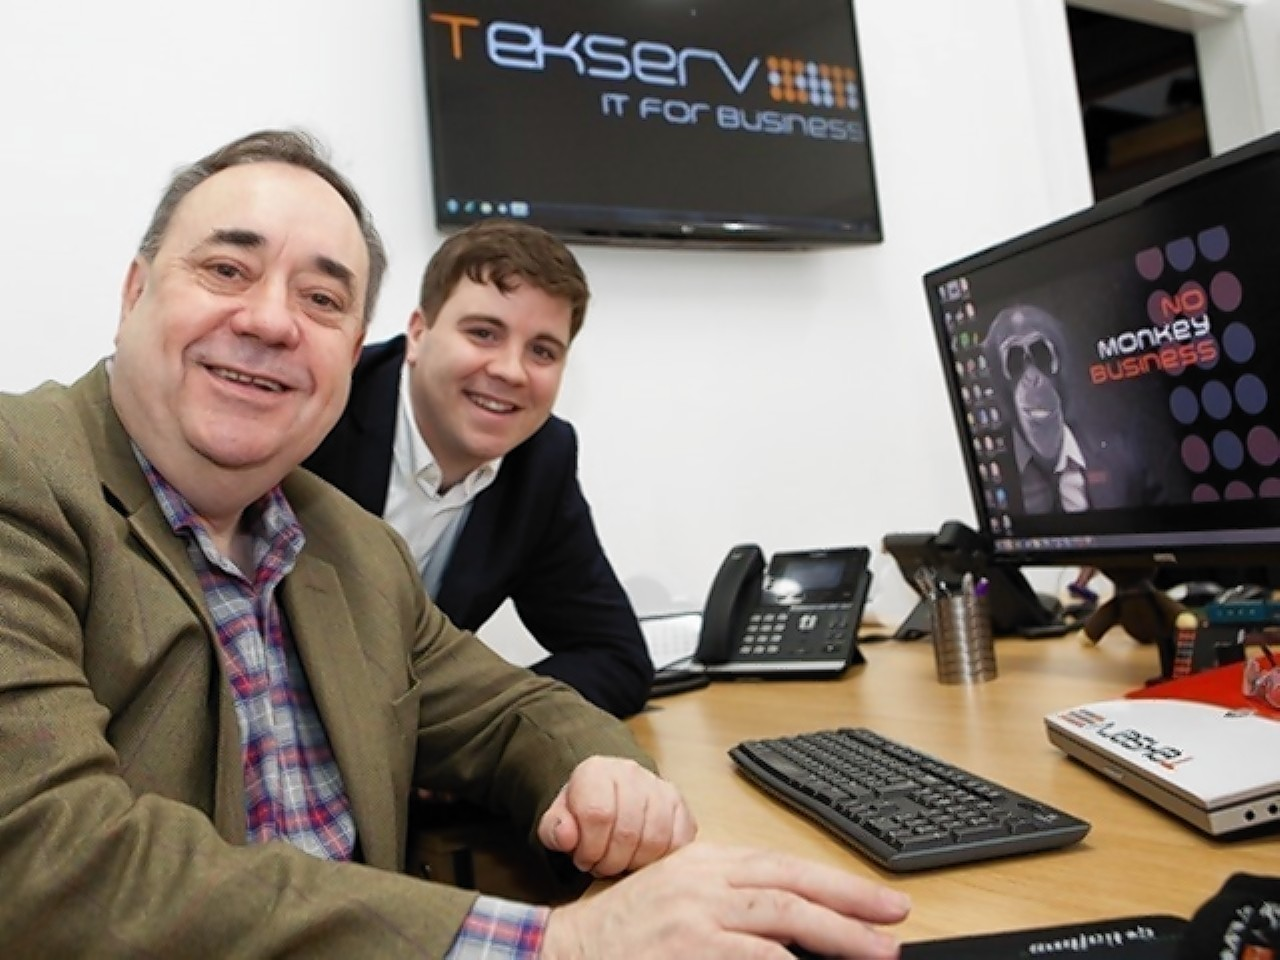 Alex Salmond (left) and Phil Rennie at the opening of the new Tekserv office